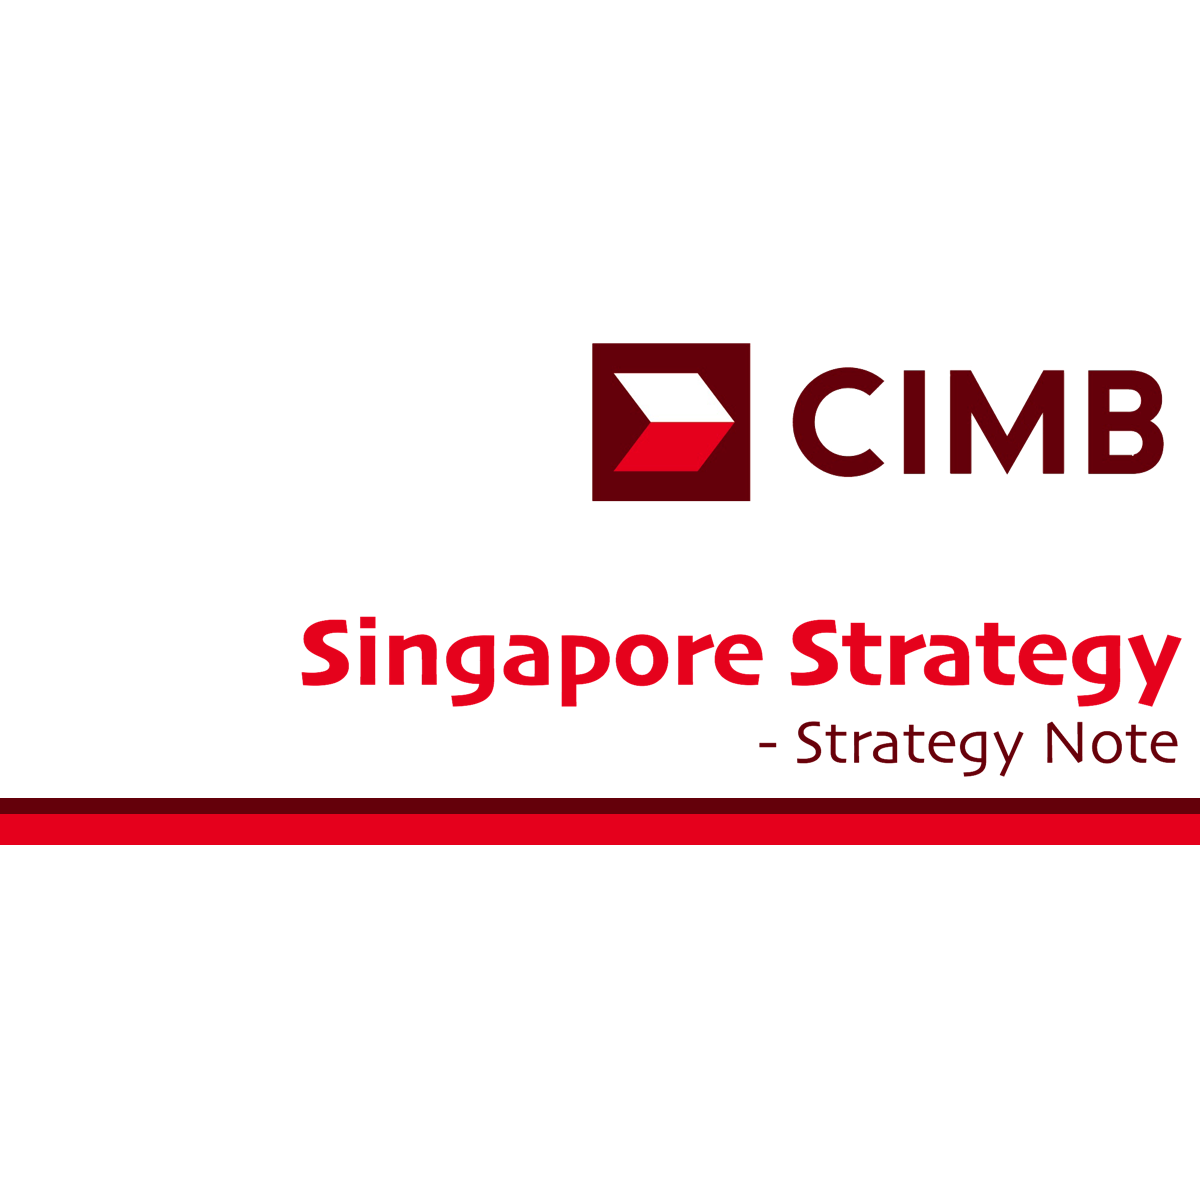 Singapore Strategy - CIMB Research 2018-04-05: In A World Of T-square